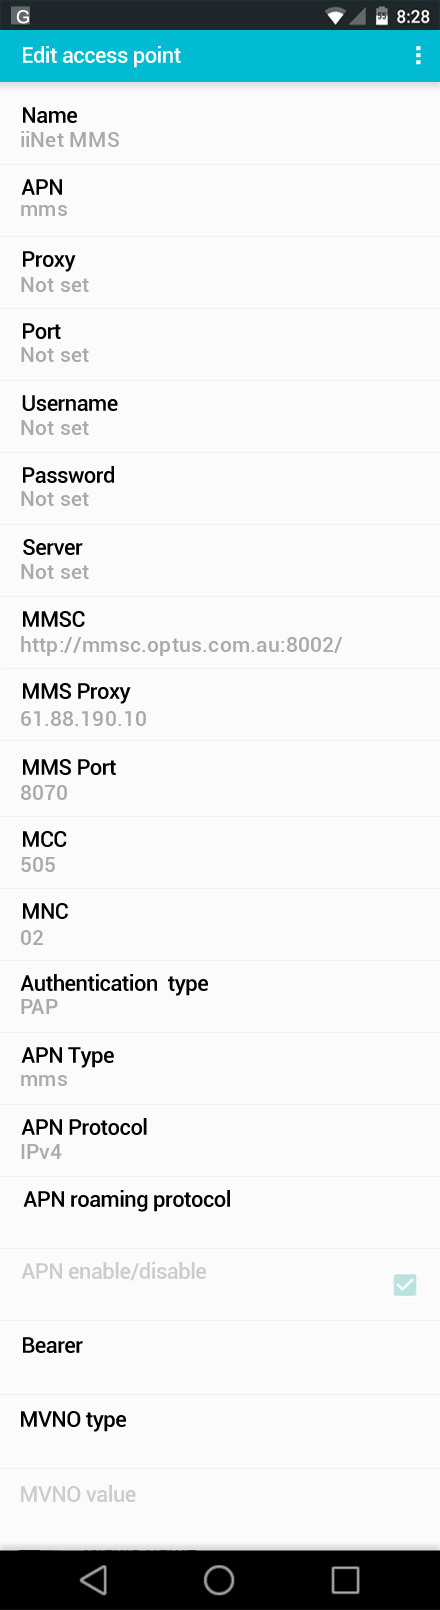 iiNet MMS APN settings for Android screenshot